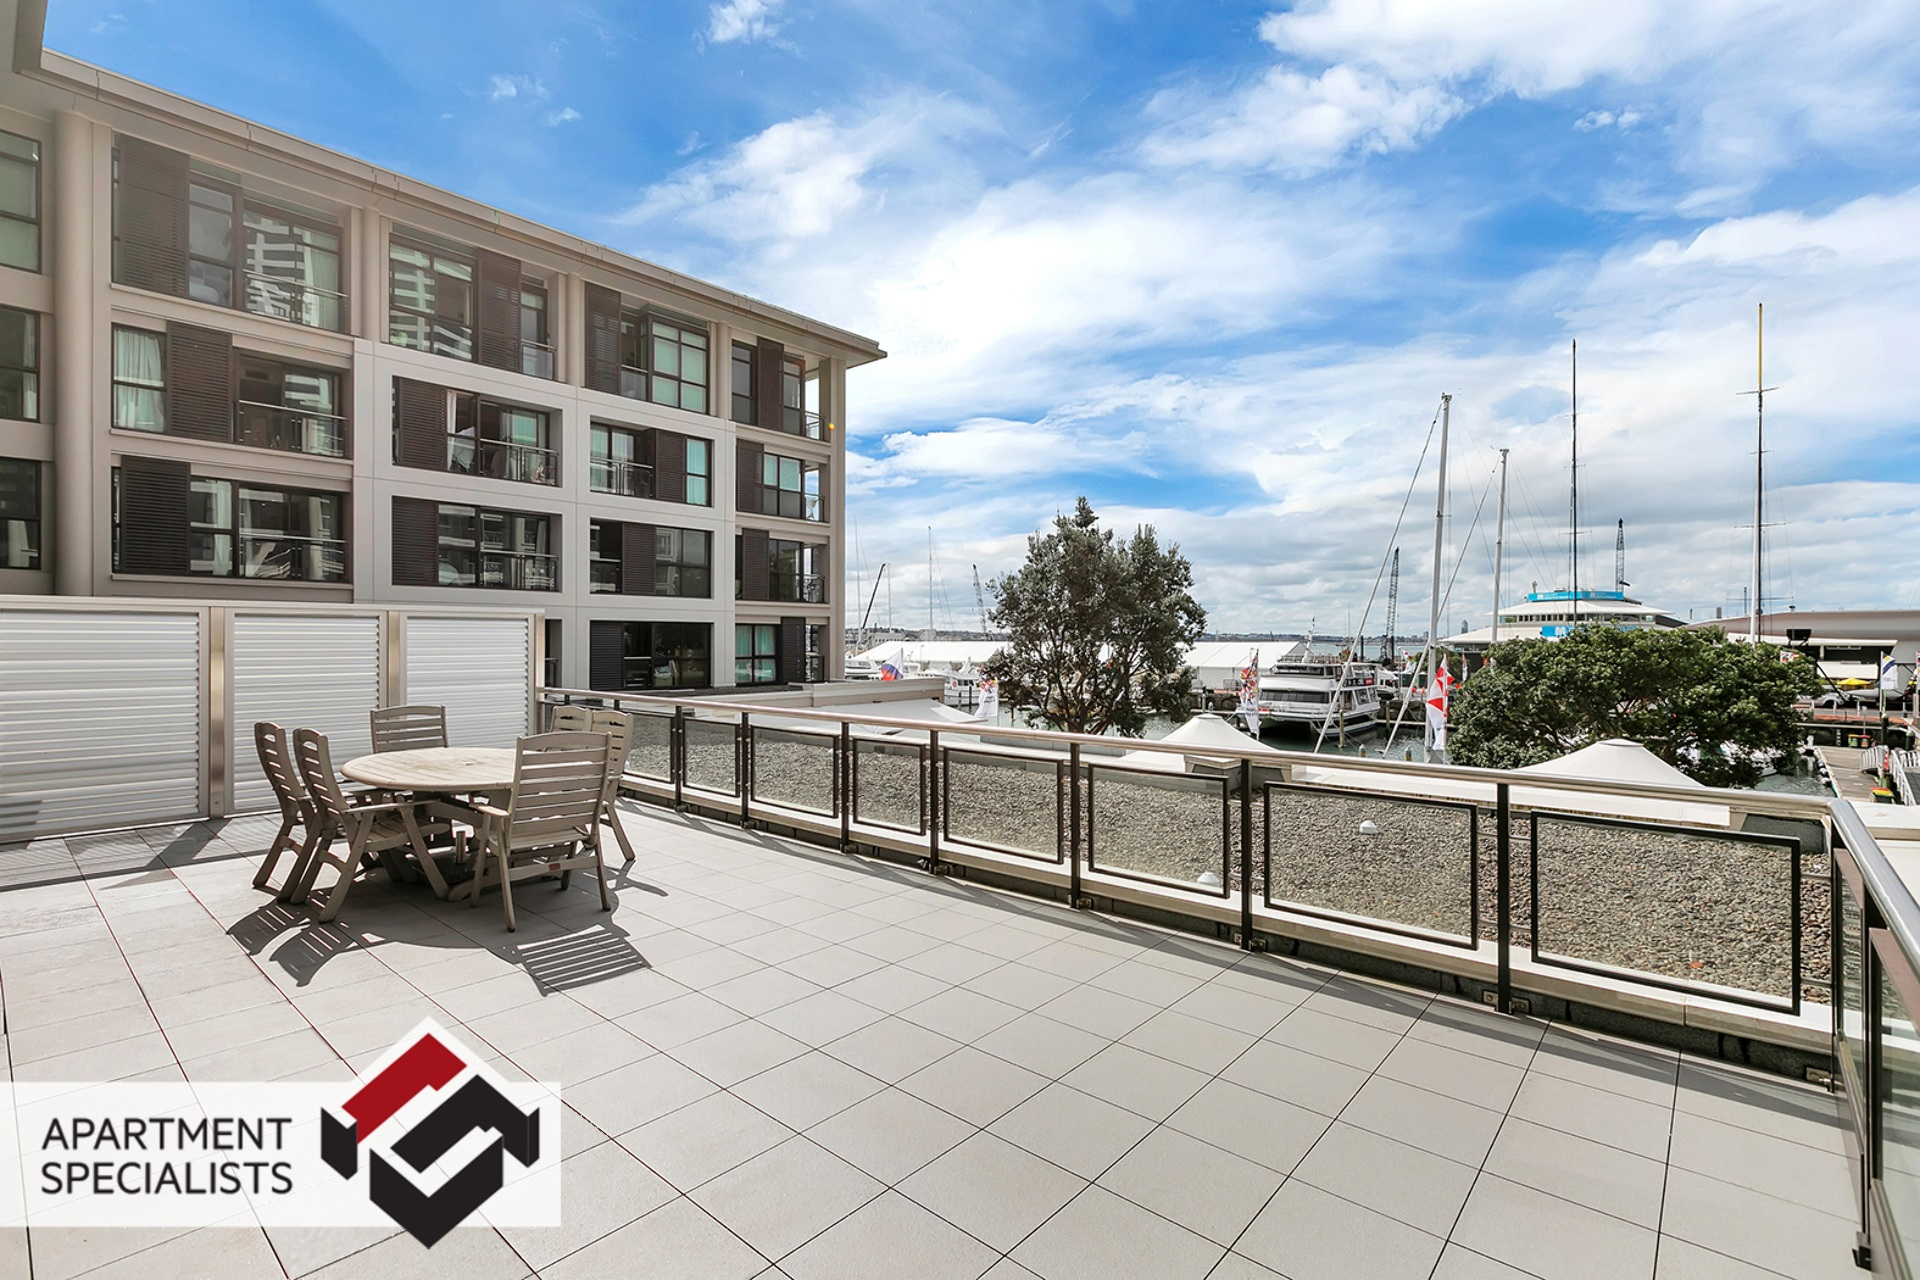 12 | 99 Customs Street West, City Centre | Apartment Specialists